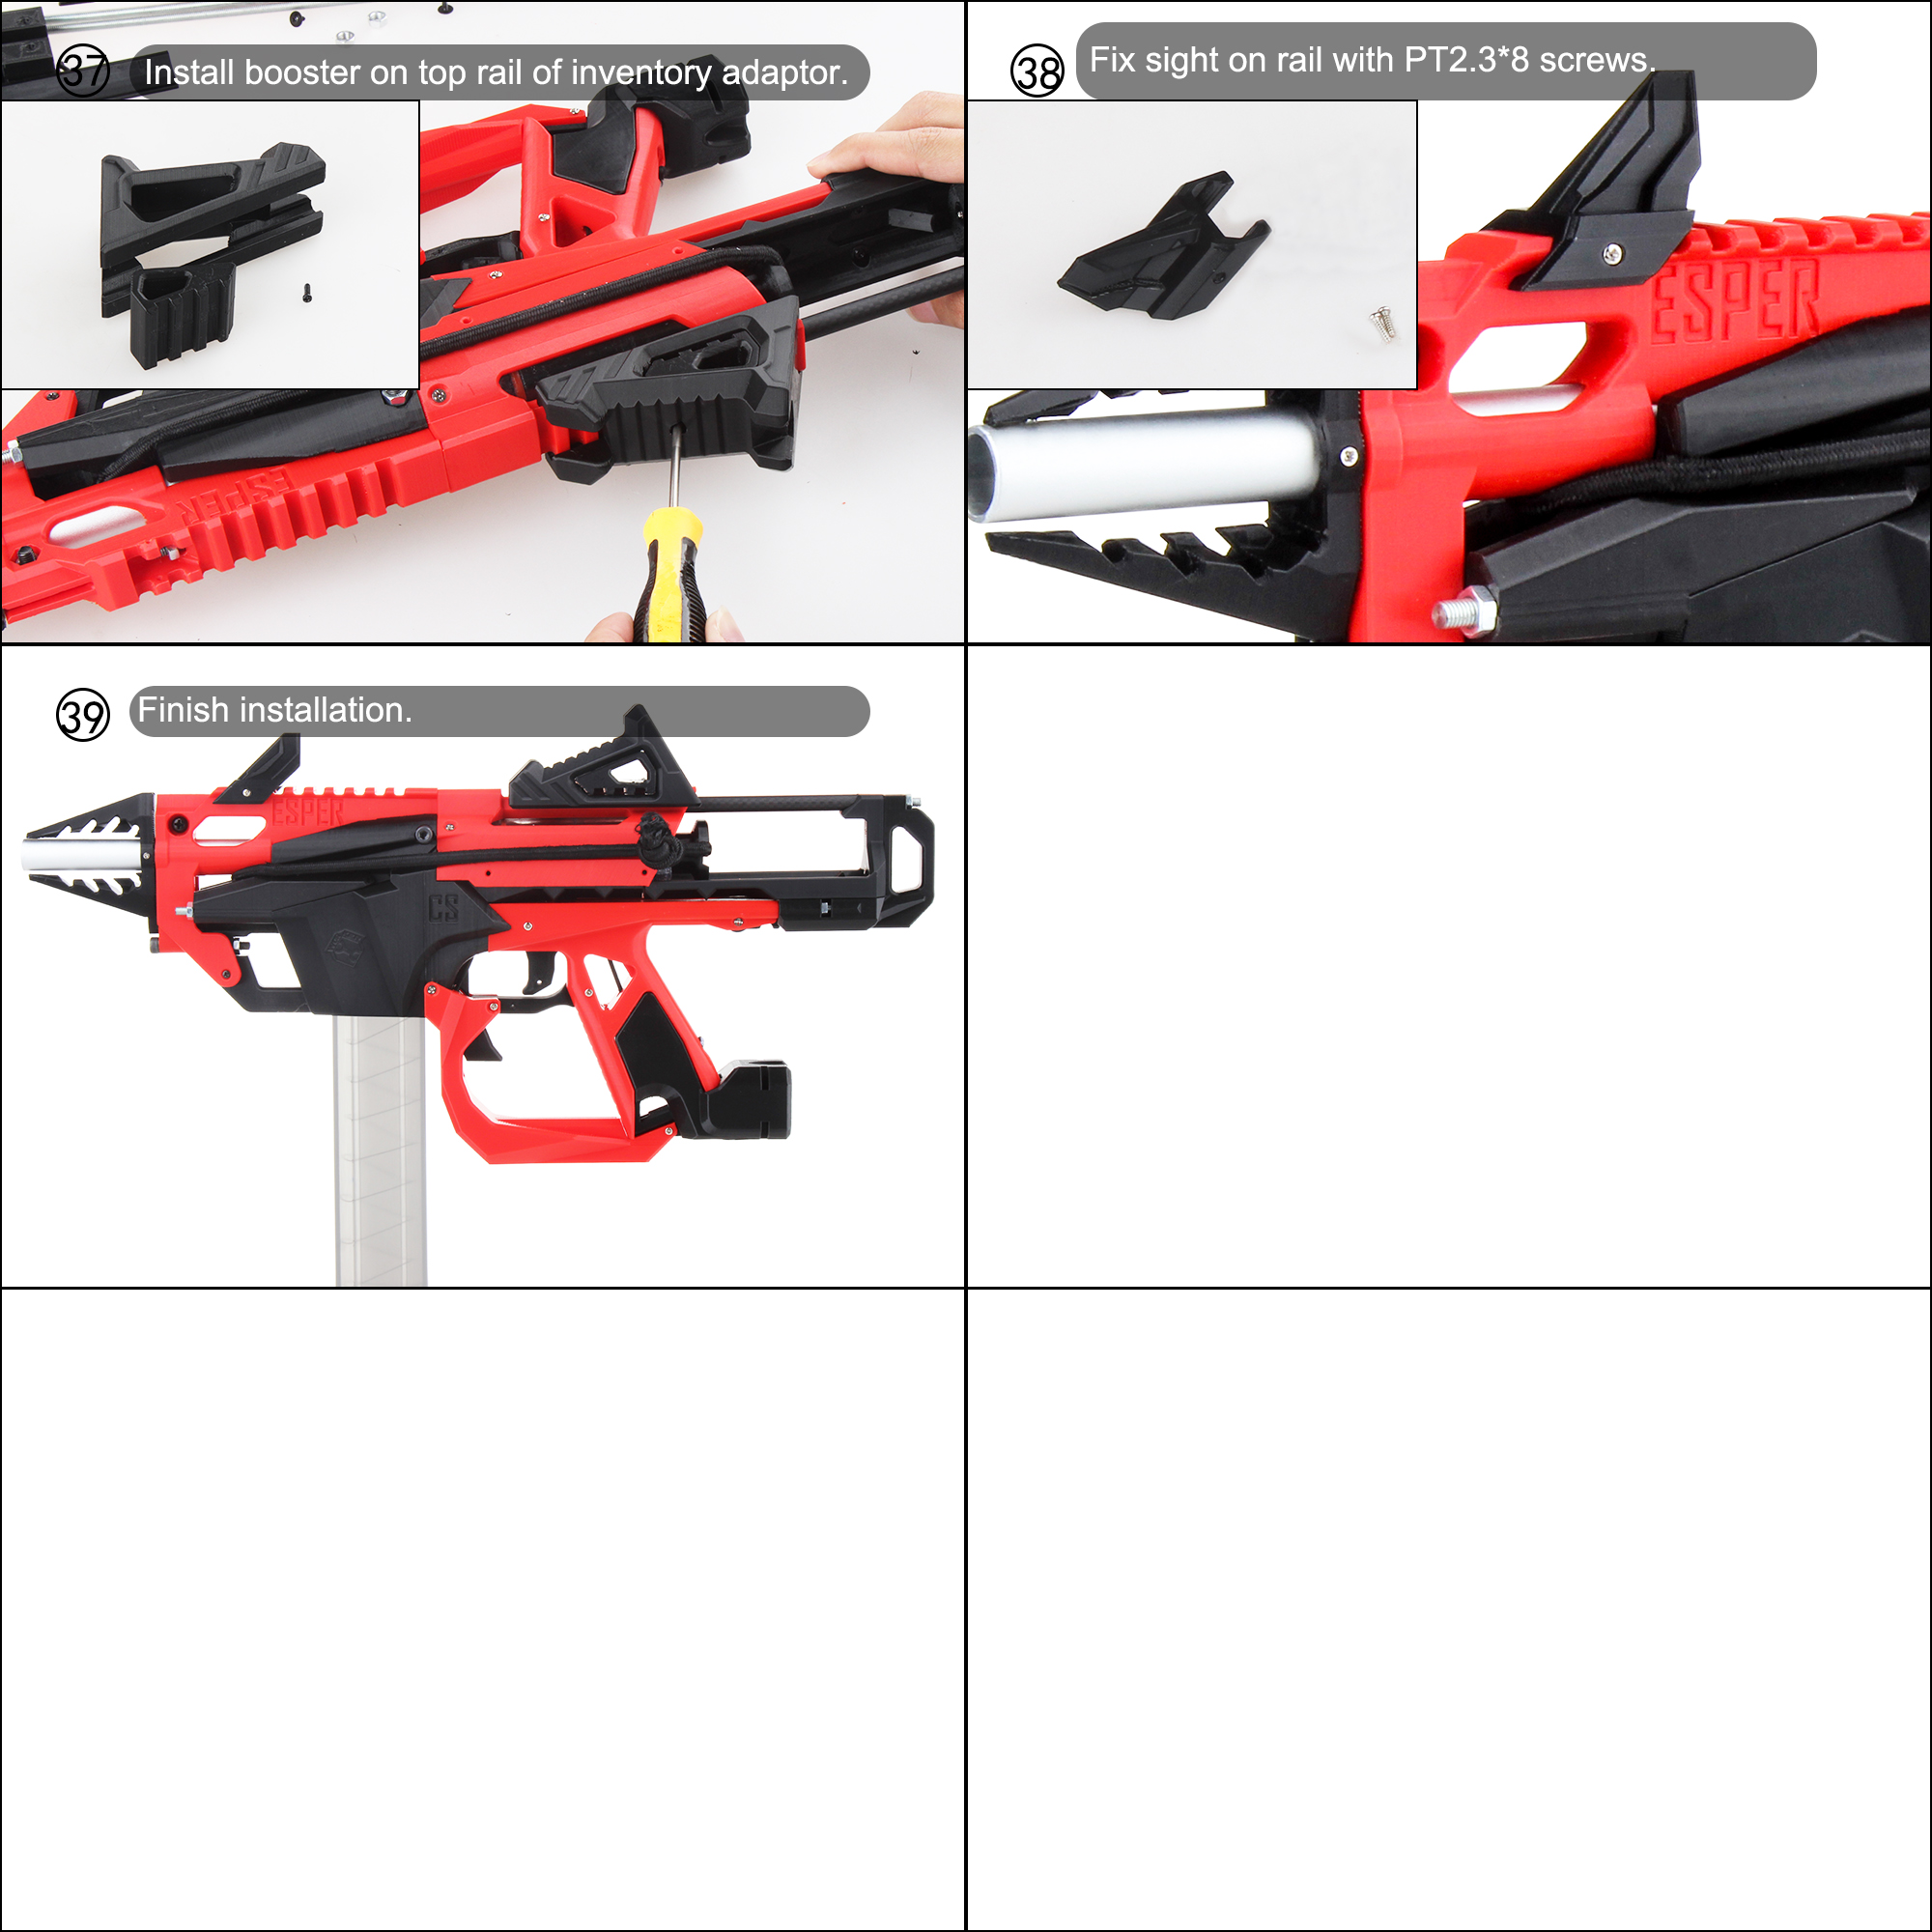 Worker F10555 Esper 3D printed Blaster Model A Assembly Instructions